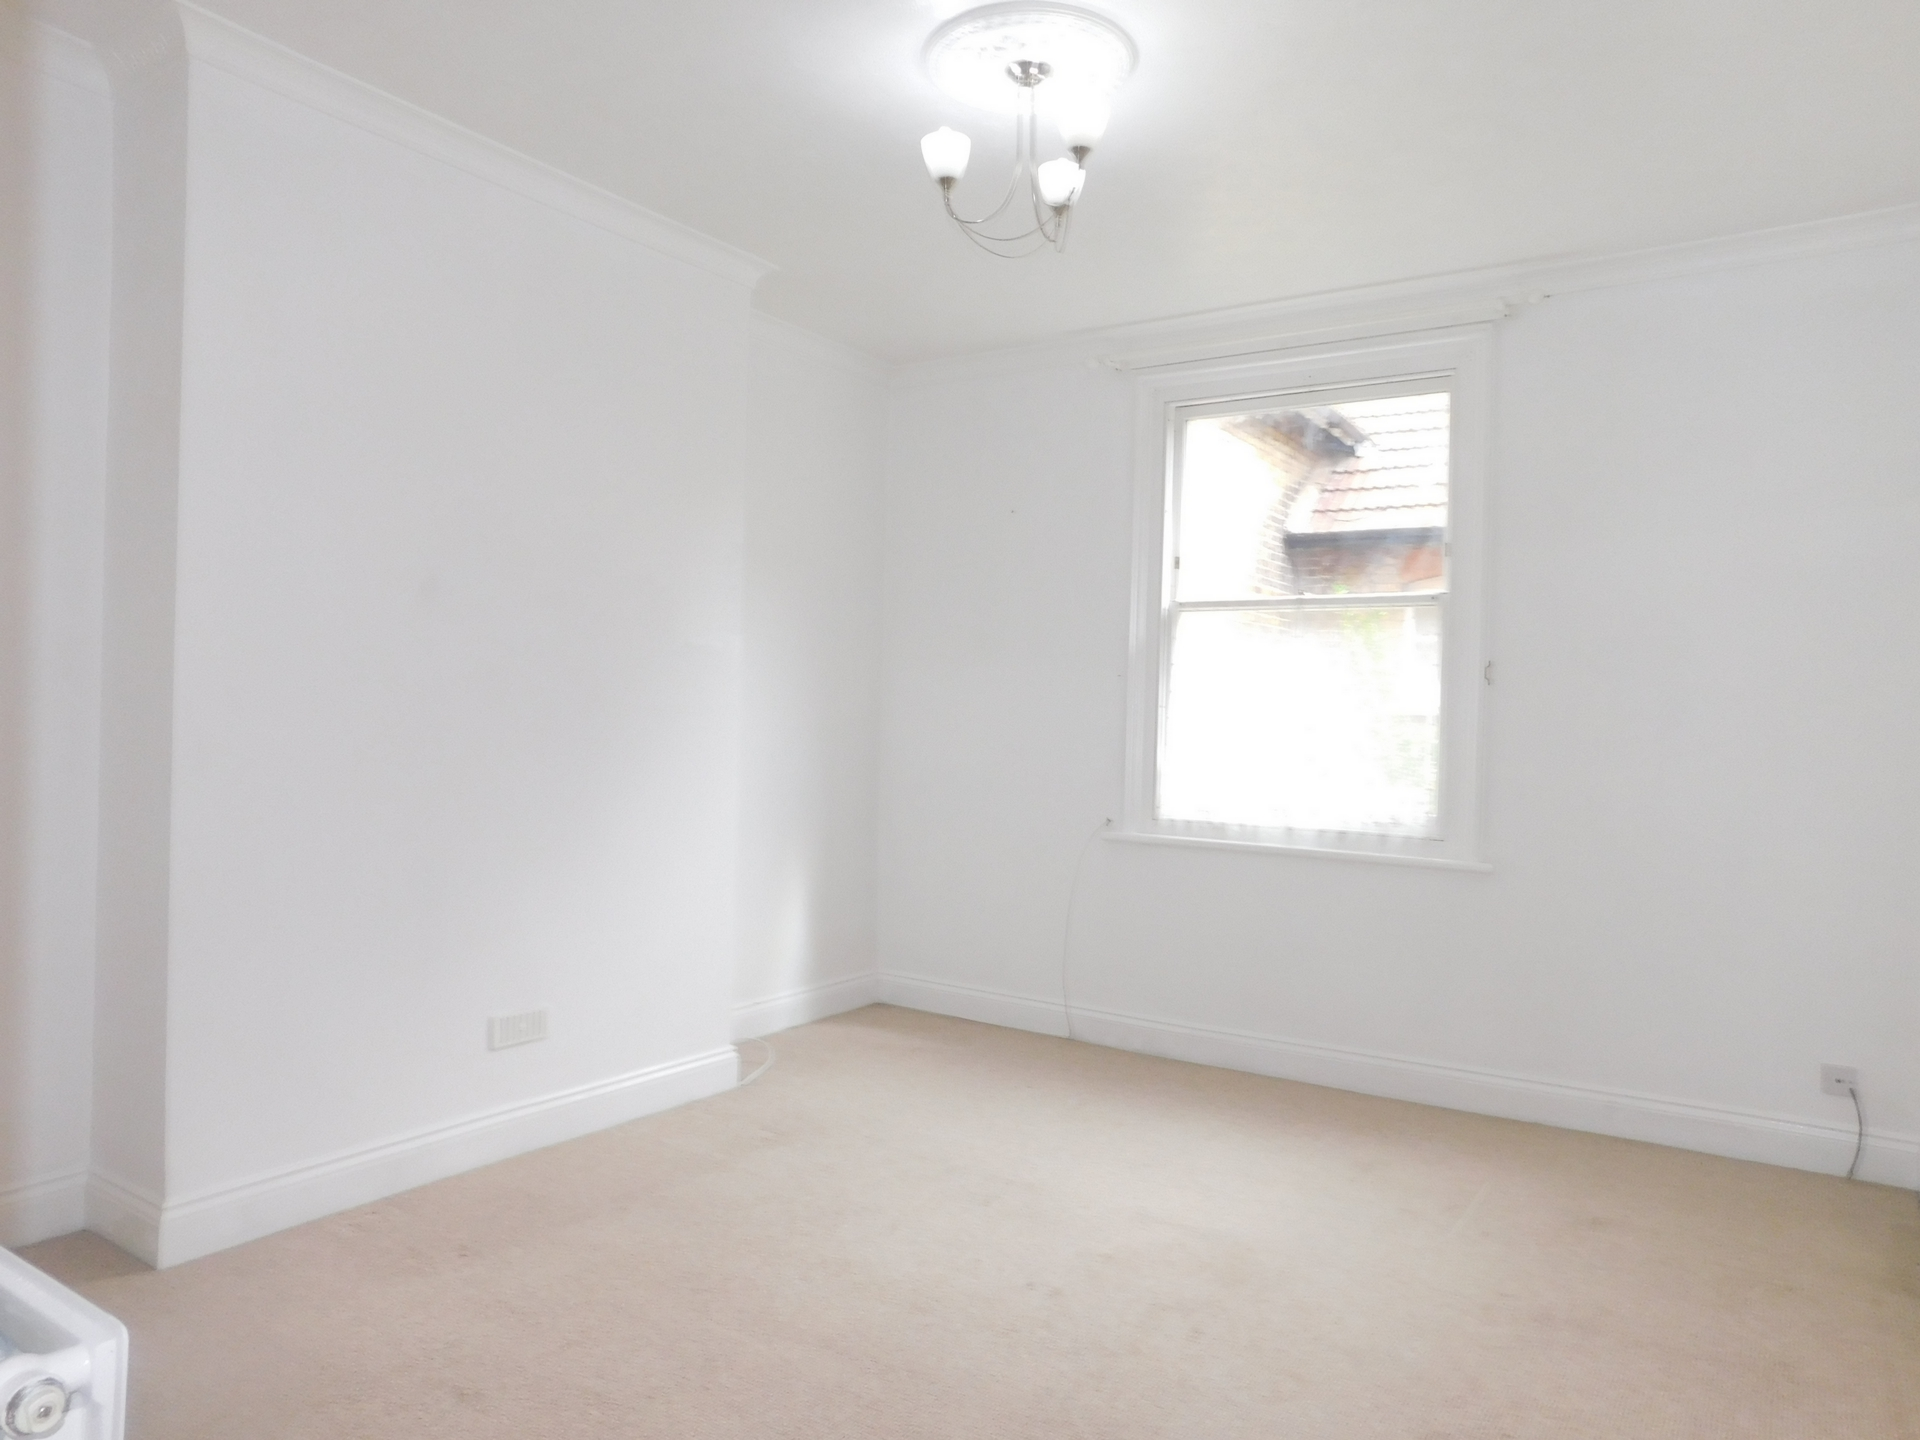 2 bed flat to rent in Westgate Bay Avenue, Westgate, CT8 1